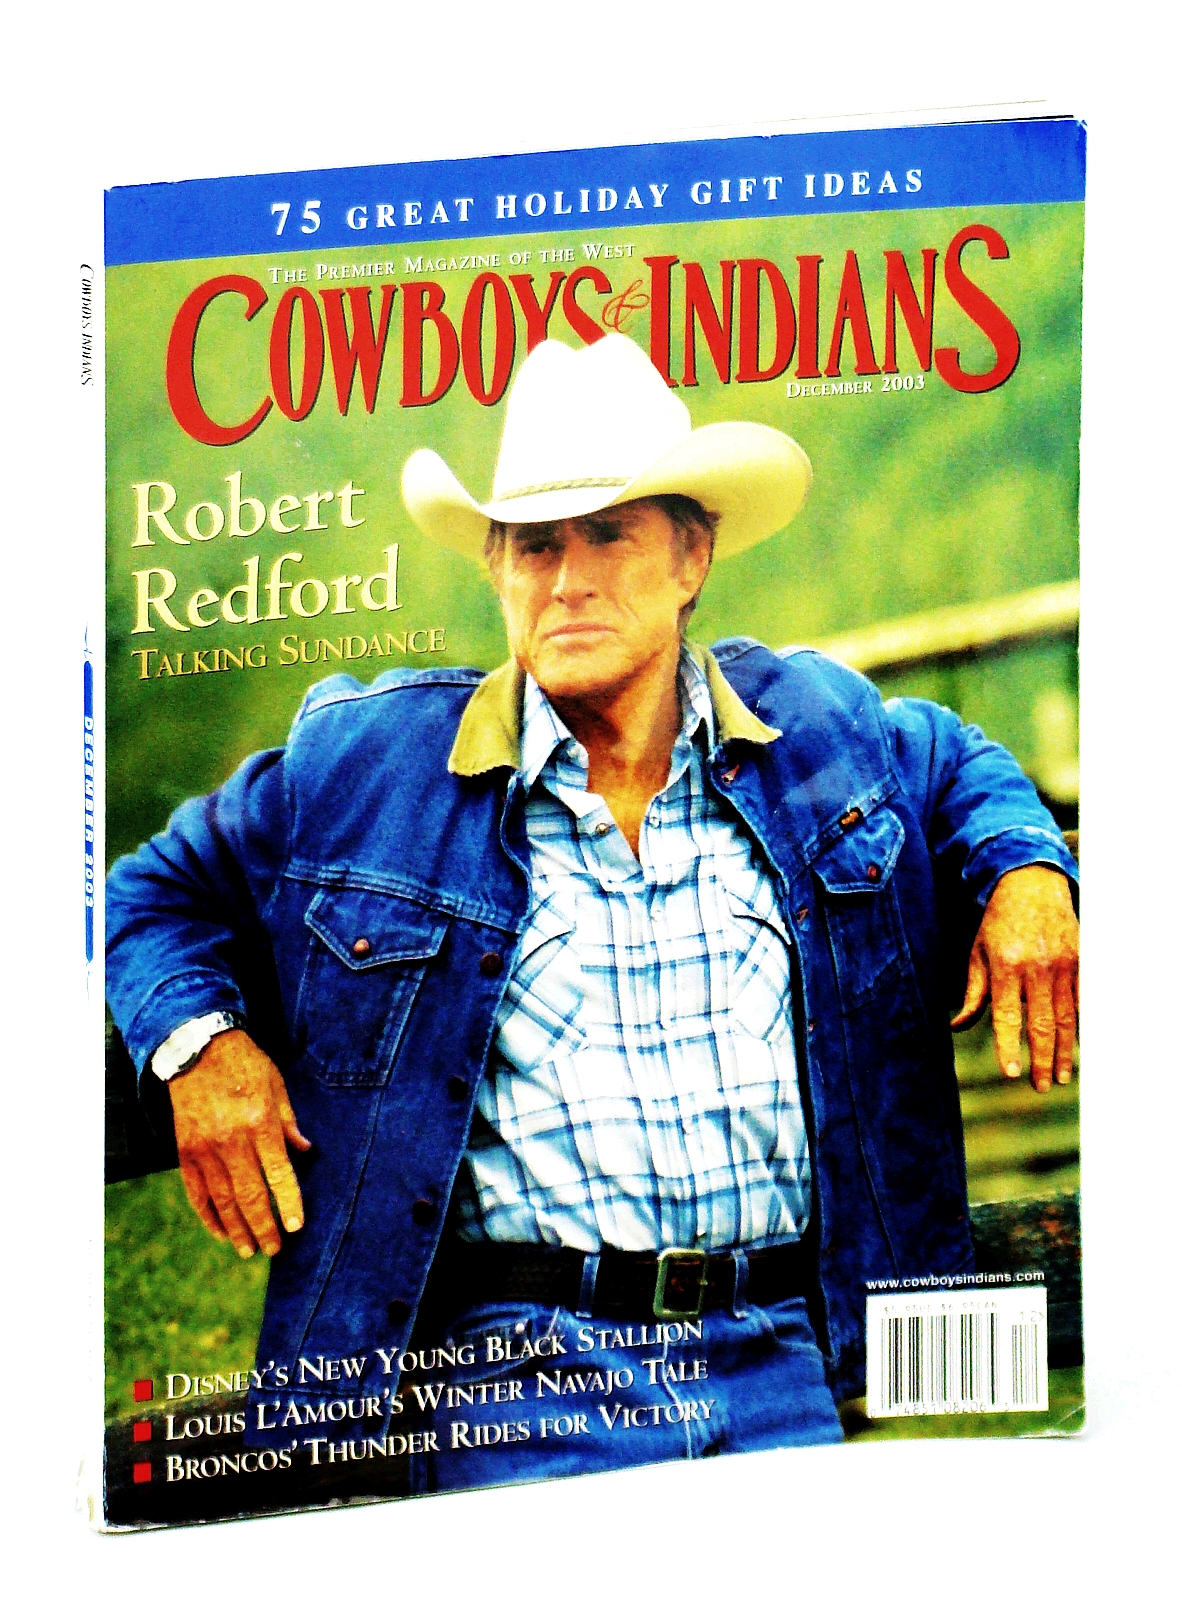 Image for Cowboys and Indians - The Premier Magazine of the West, December  [Dec.] 2003 - Robert Redford Cover Photo